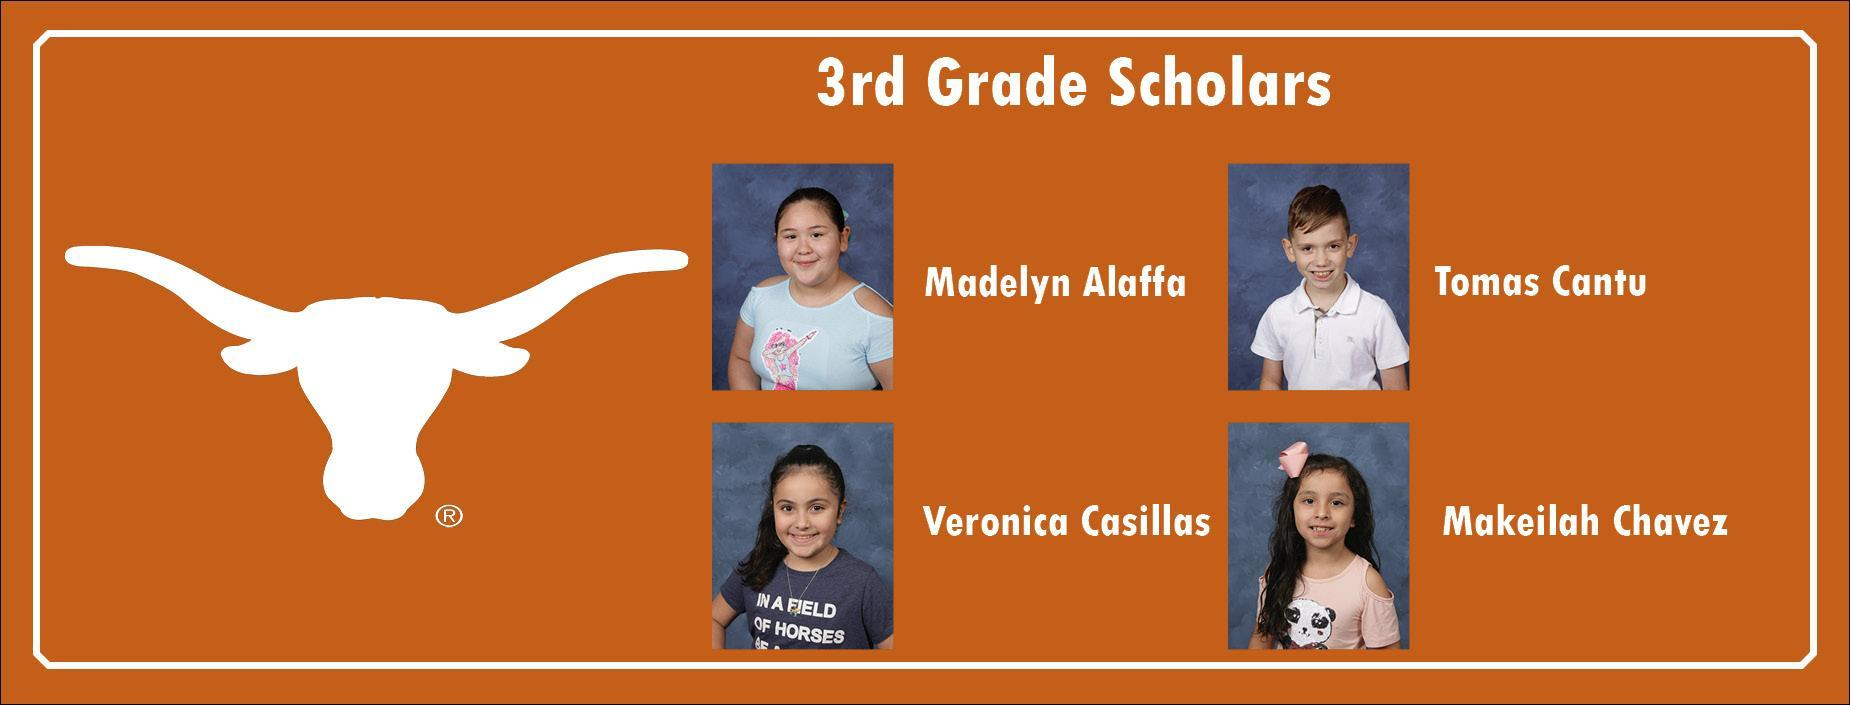 picture of 3rd grade scholars